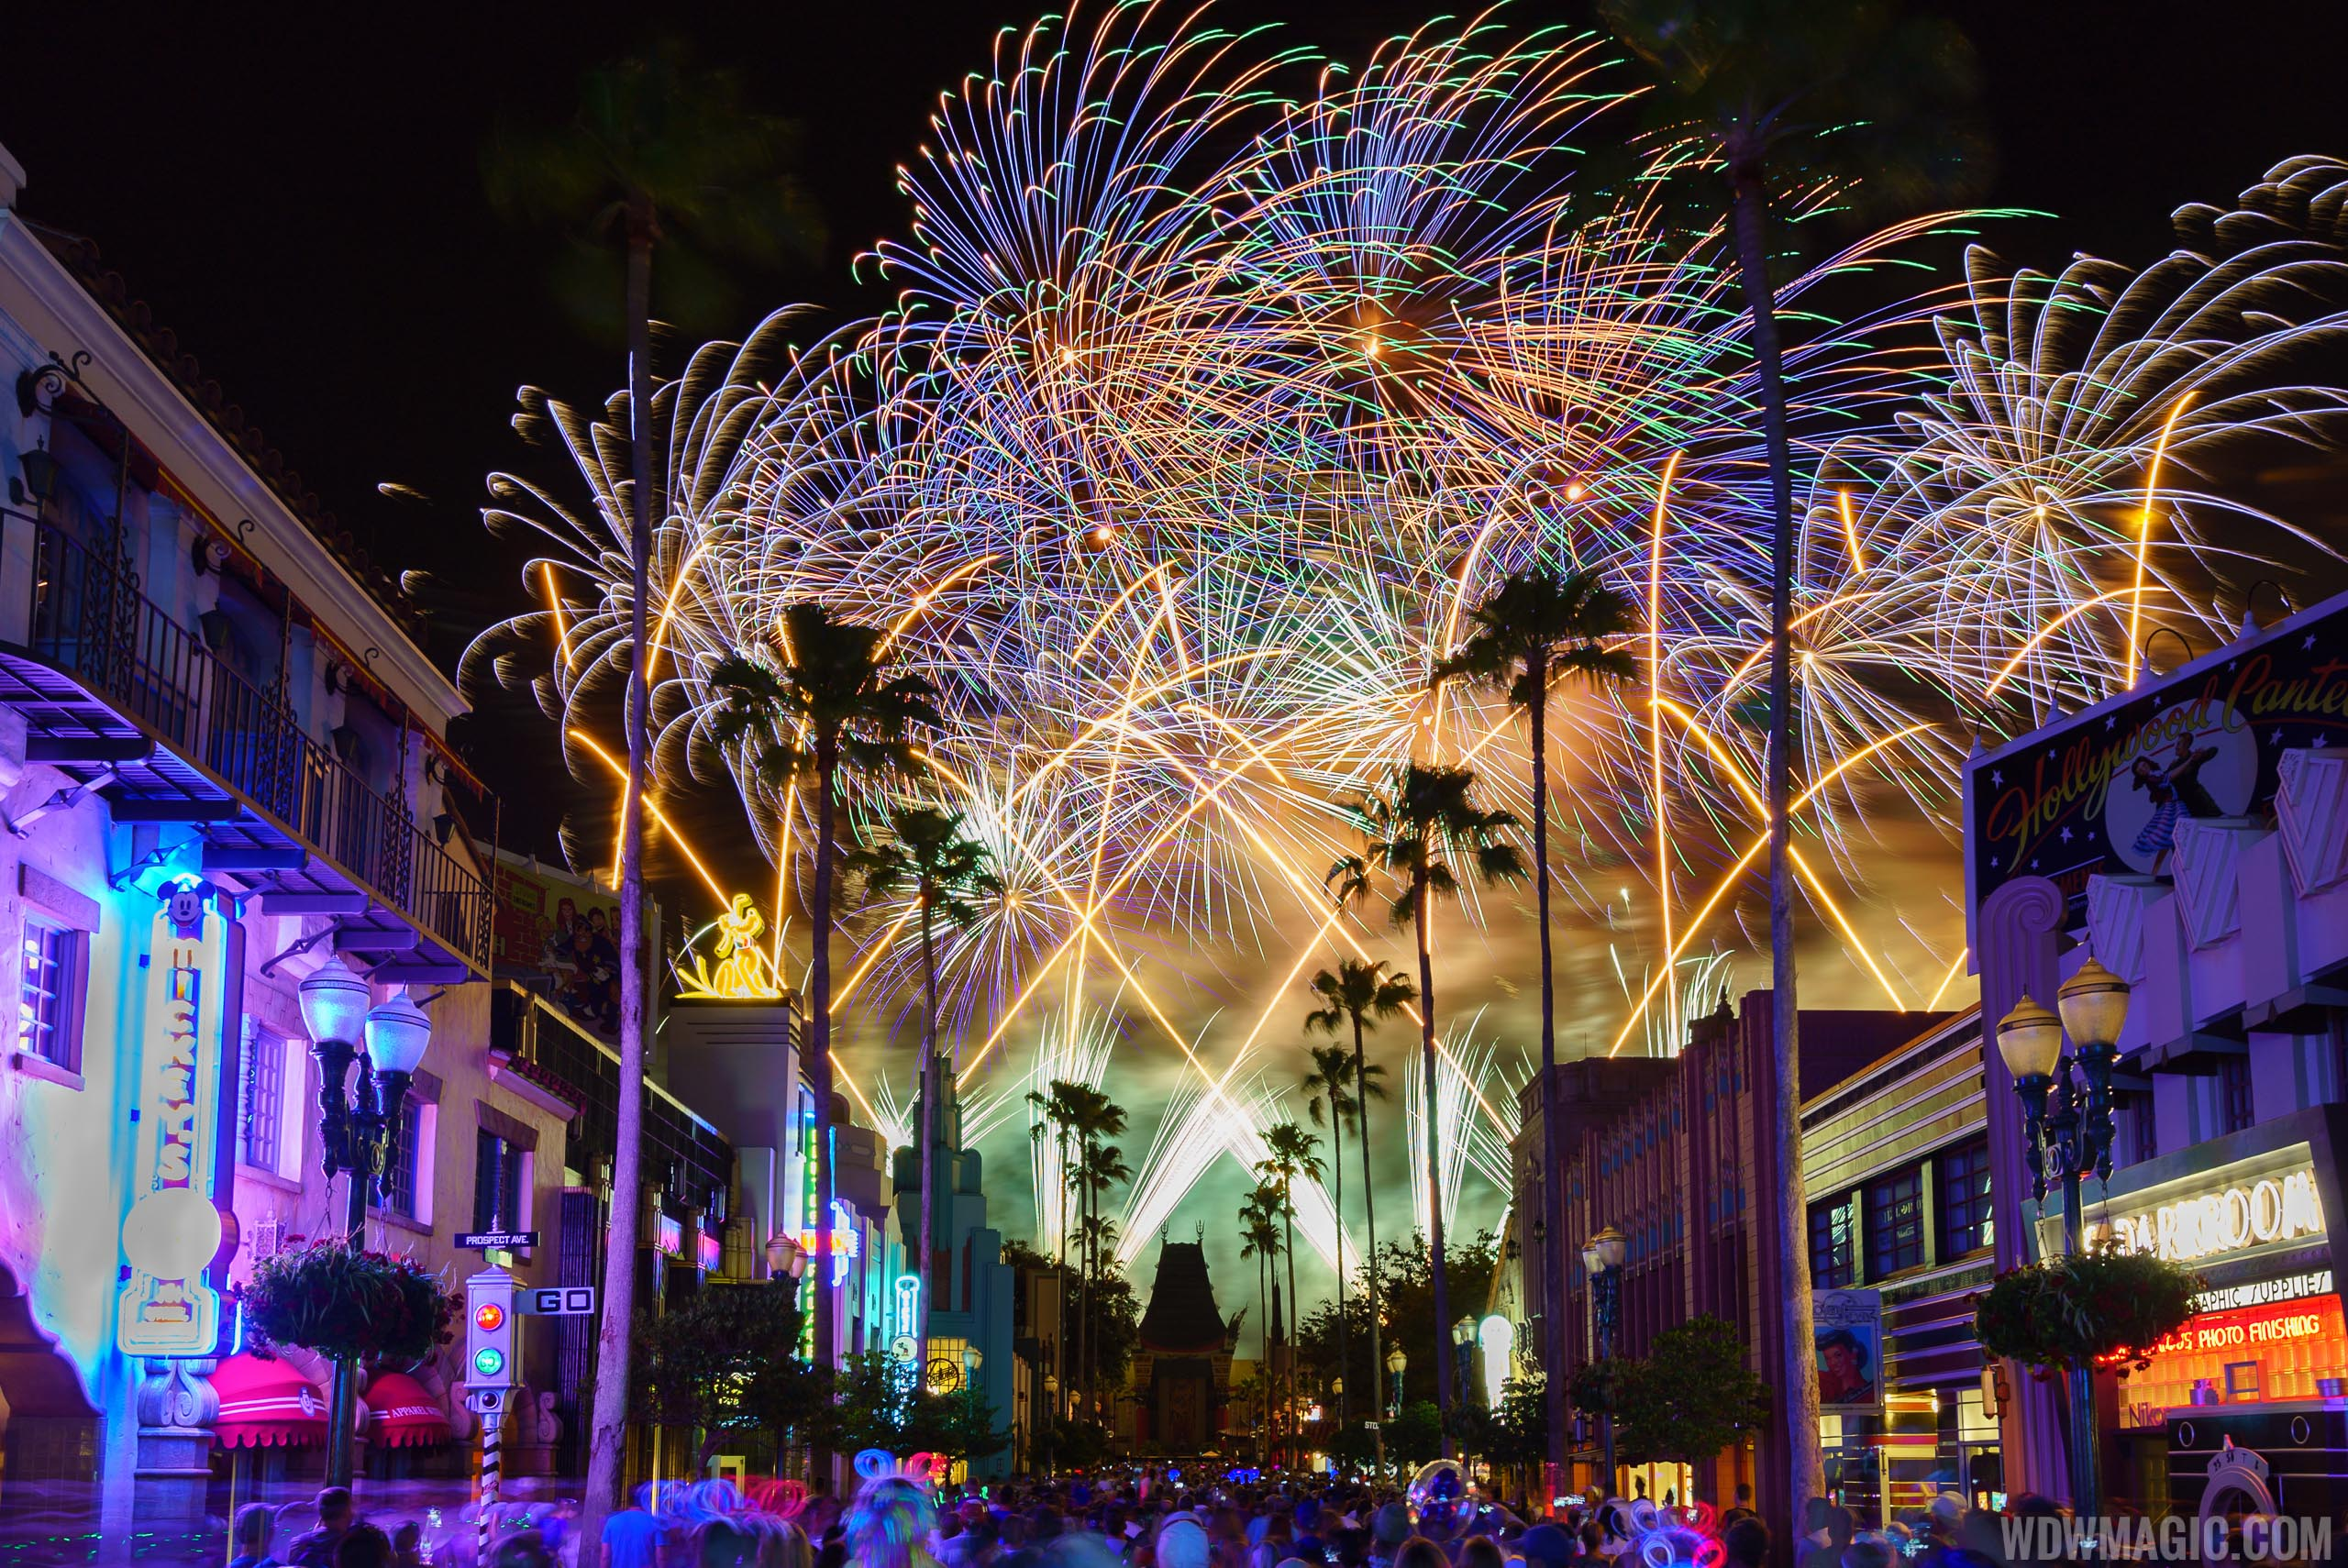 Symphony in the Stars: A Galactic Spectacular show